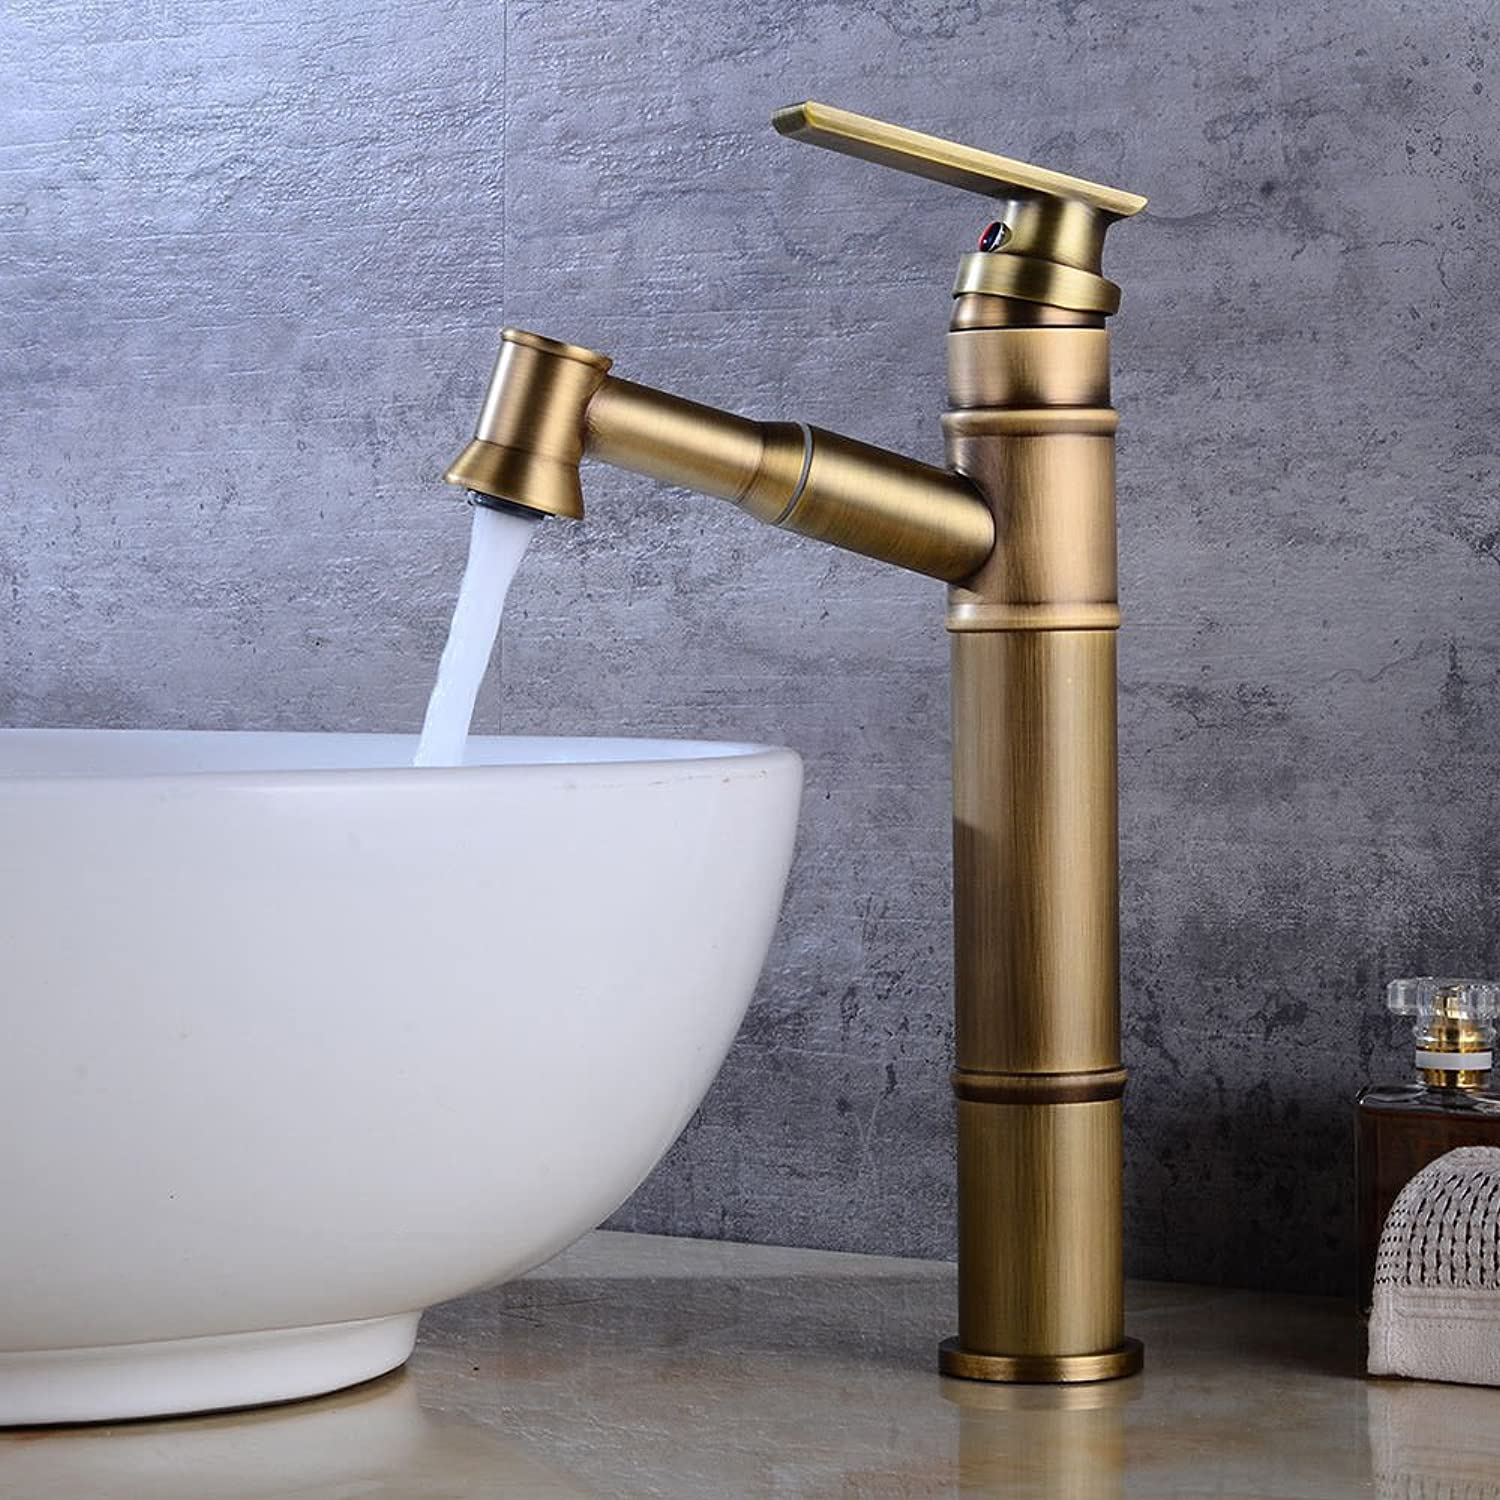 AQMMi Bathroom Sink Faucet Basin Mixer Tap Antique Pull Out Pull Out 1 Hole Hot and Cold Water Basin Sink Tap Bathroom Bar Faucet